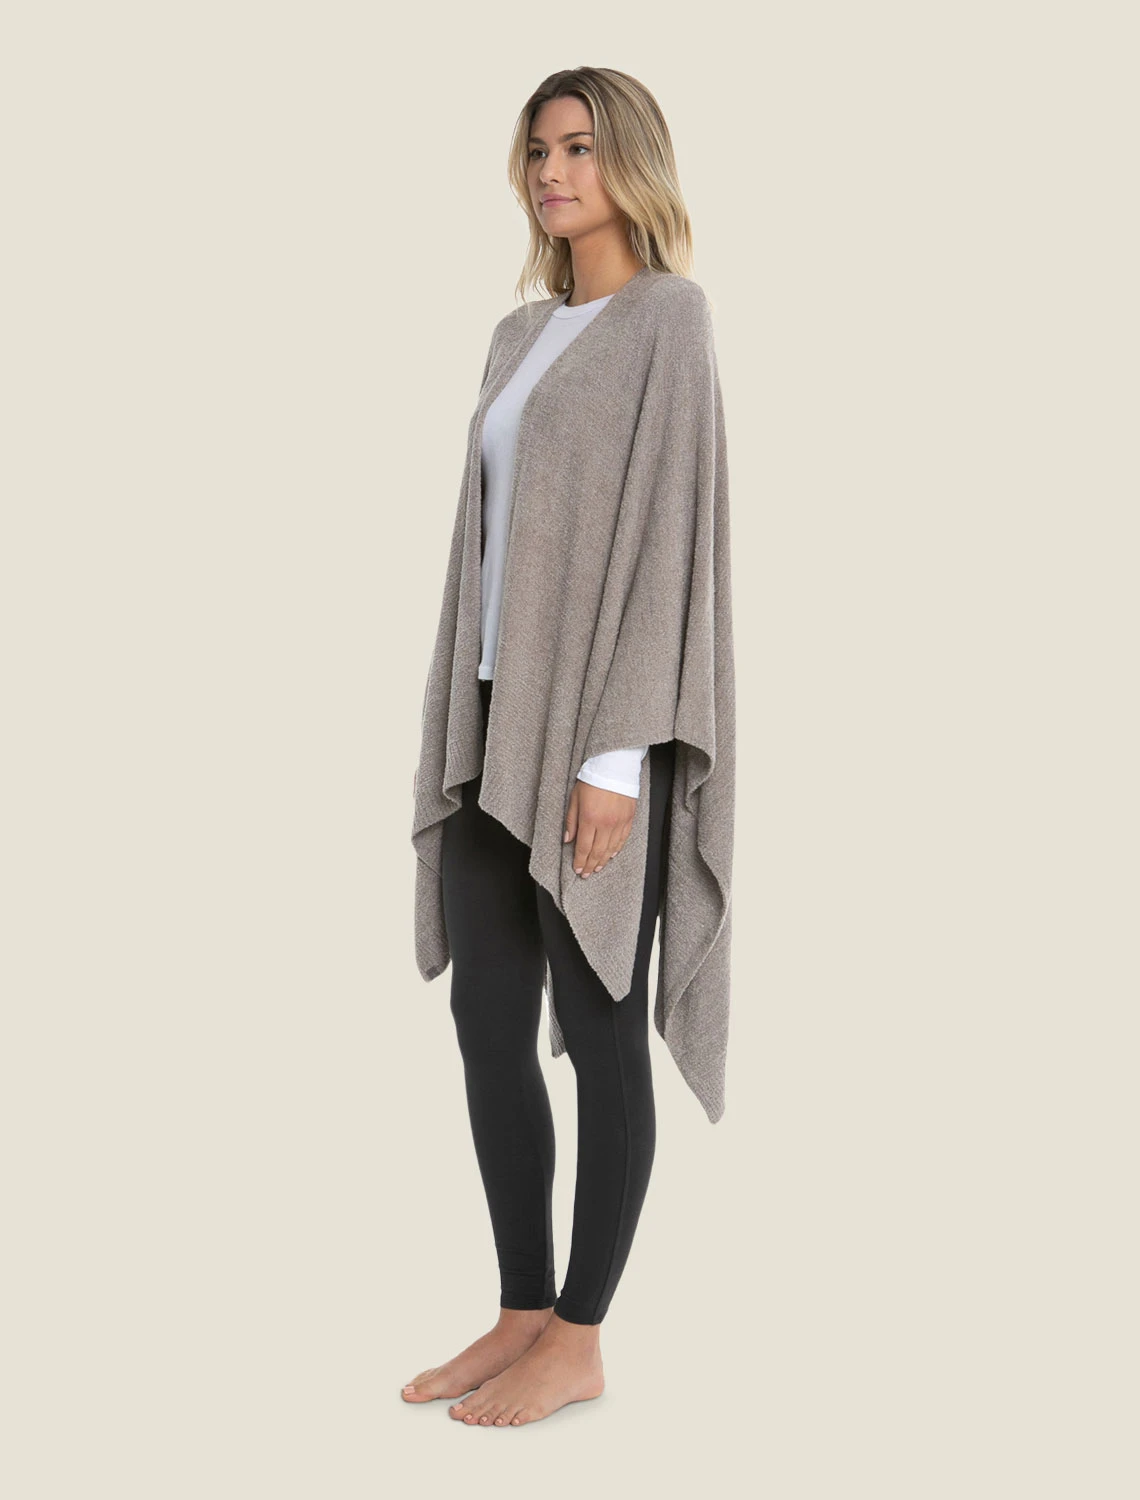 Barefoot Dreams - CozyChic Lite® Weekend Wrap - Heathered Driftwood /Taupe